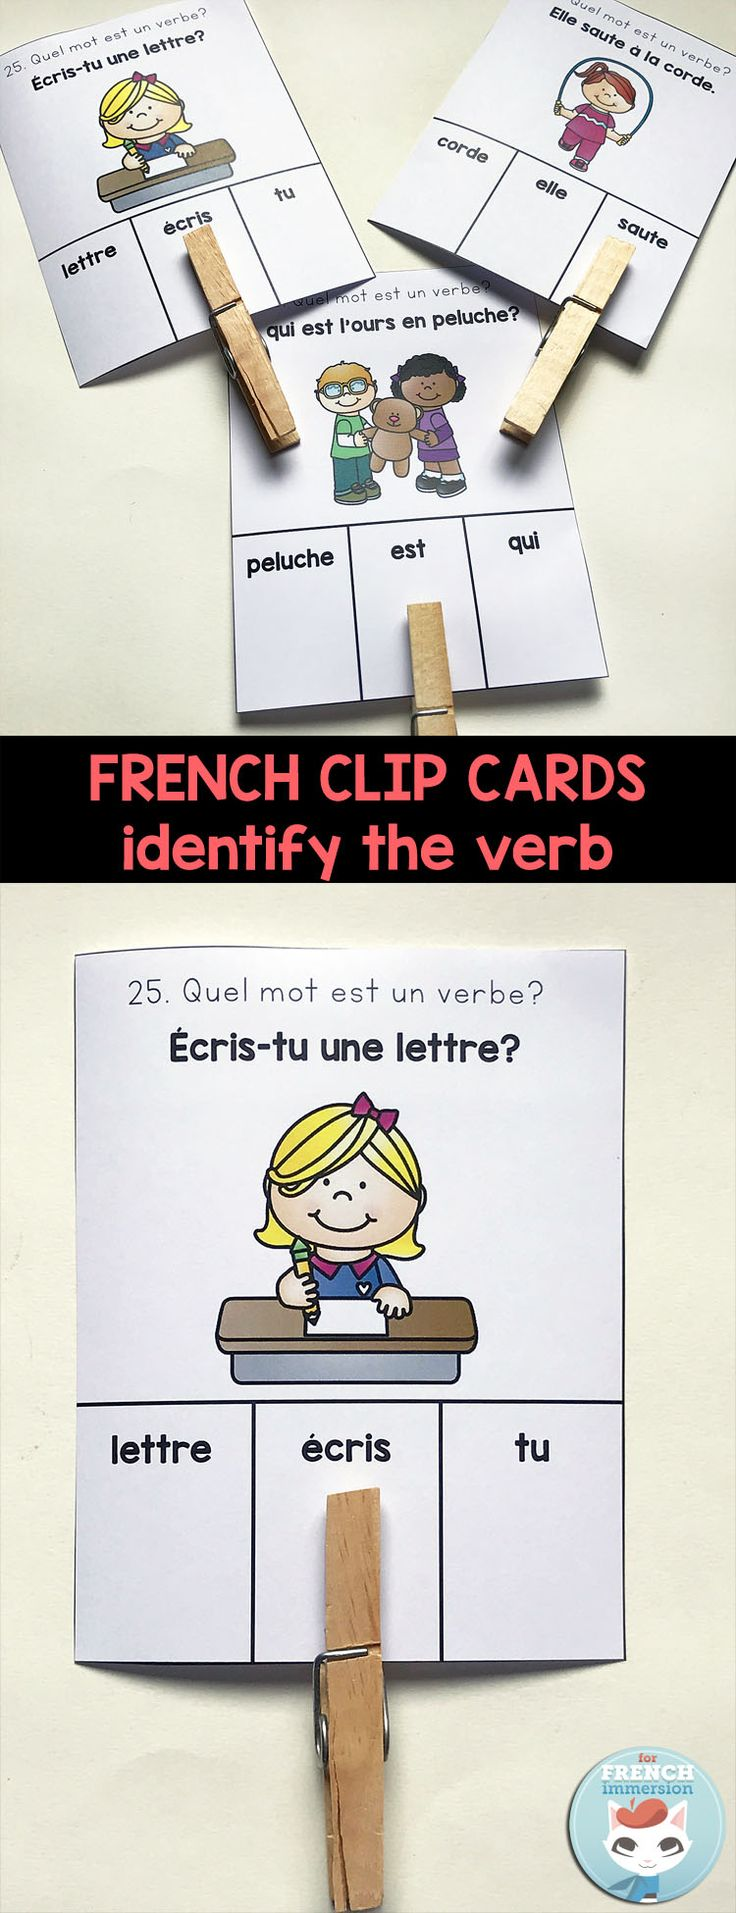 "French Clip Cards: use clothespins to ""clip"" the right answer! Identify the verbs in sentences. Great French grammar practice!"